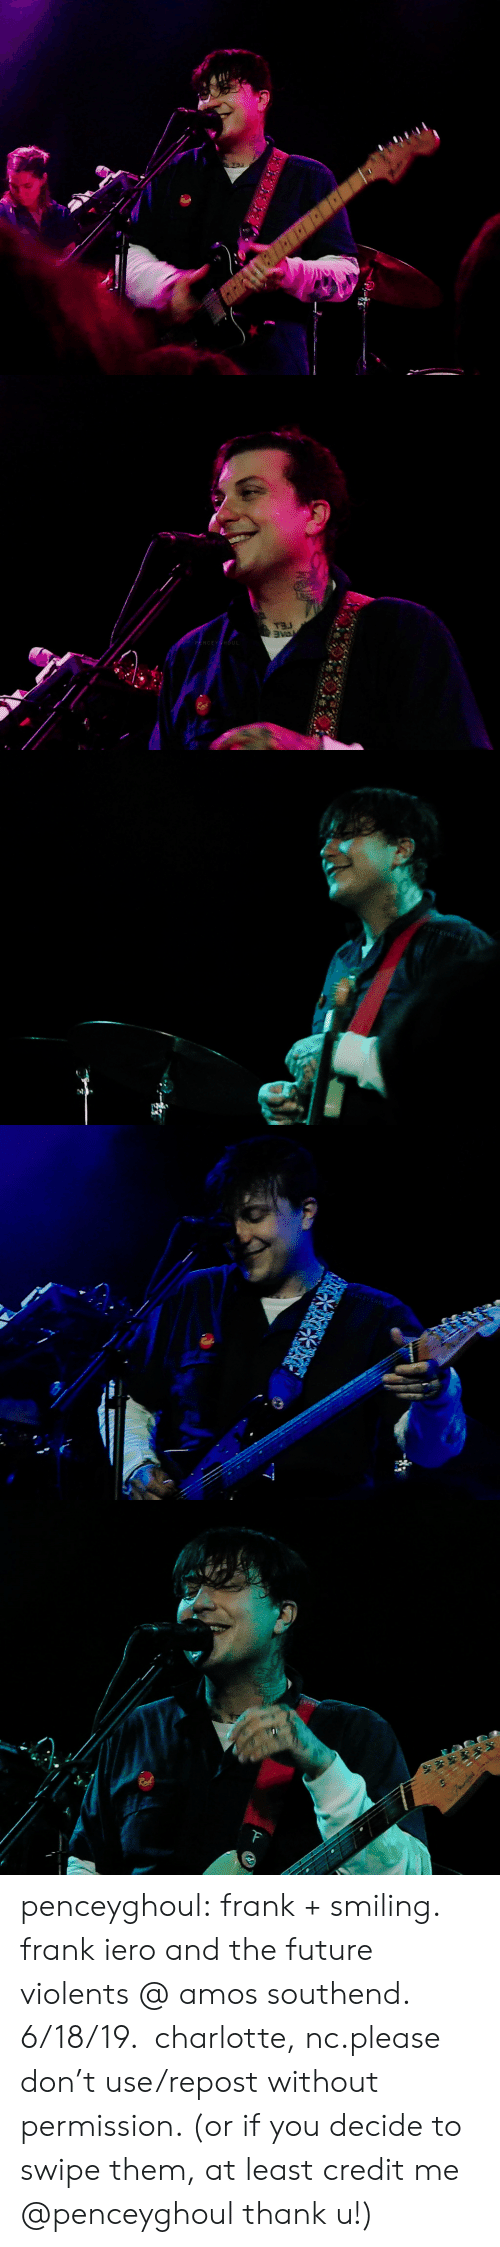 Thank U: PENCEYGHO   DAE  PENCEYHOUL   PENCEYGH oUI   GHOUL   ENCEYGHOUt  F penceyghoul:  frank + smiling. frank iero and the future violents@ amos southend. 6/18/19. charlotte, nc.please don't use/repost without permission. (or if you decide to swipe them, at least credit me @penceyghoul thank u!)